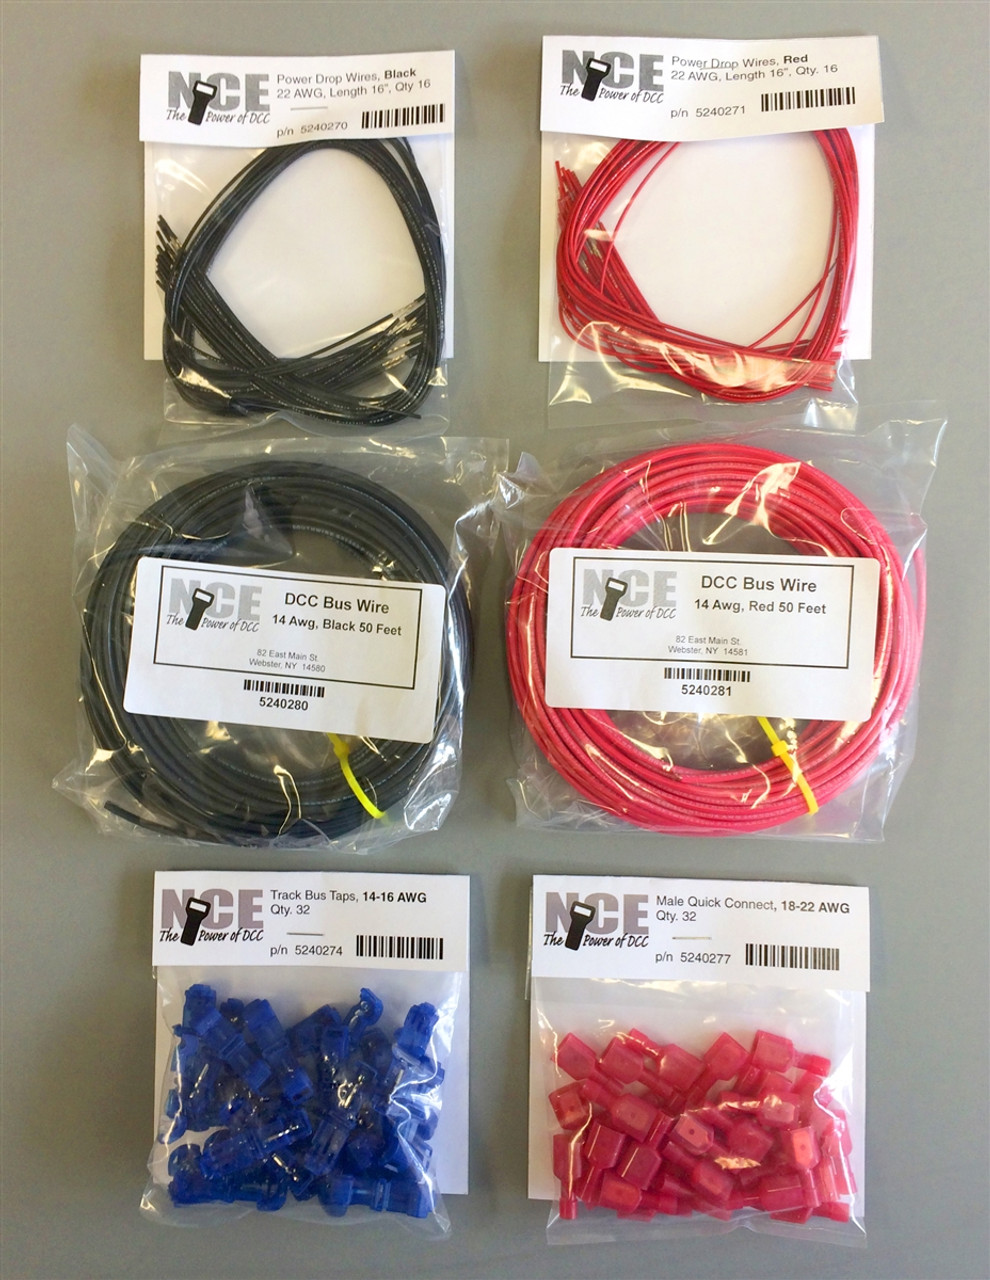 hight resolution of nce 524268 dcc main bus wiring kit for typical 50 foot double track mainline